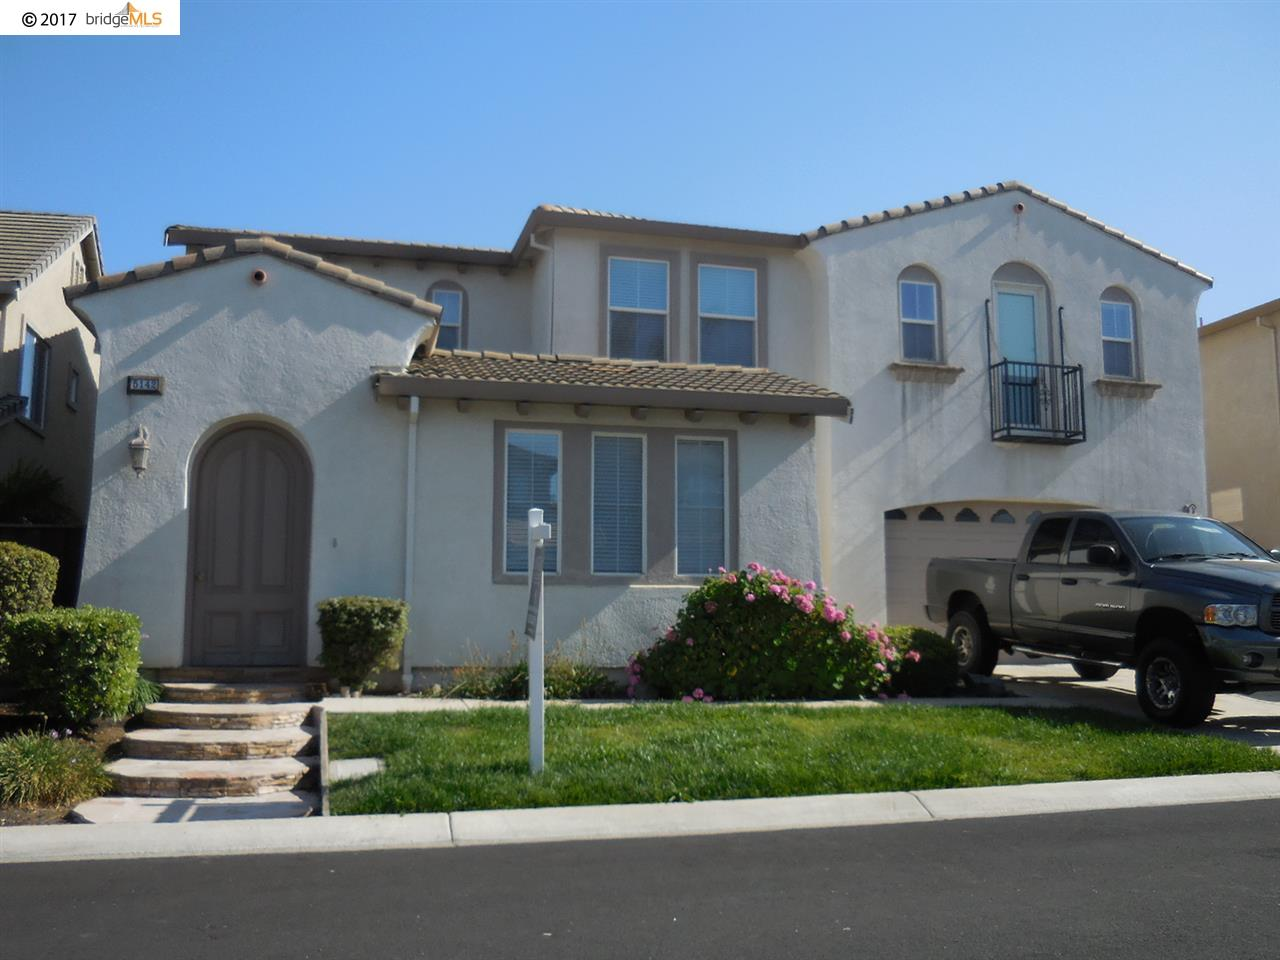 Additional photo for property listing at 5142 Fern Ridge Circle 5142 Fern Ridge Circle Discovery Bay, Kalifornien 94505 Vereinigte Staaten